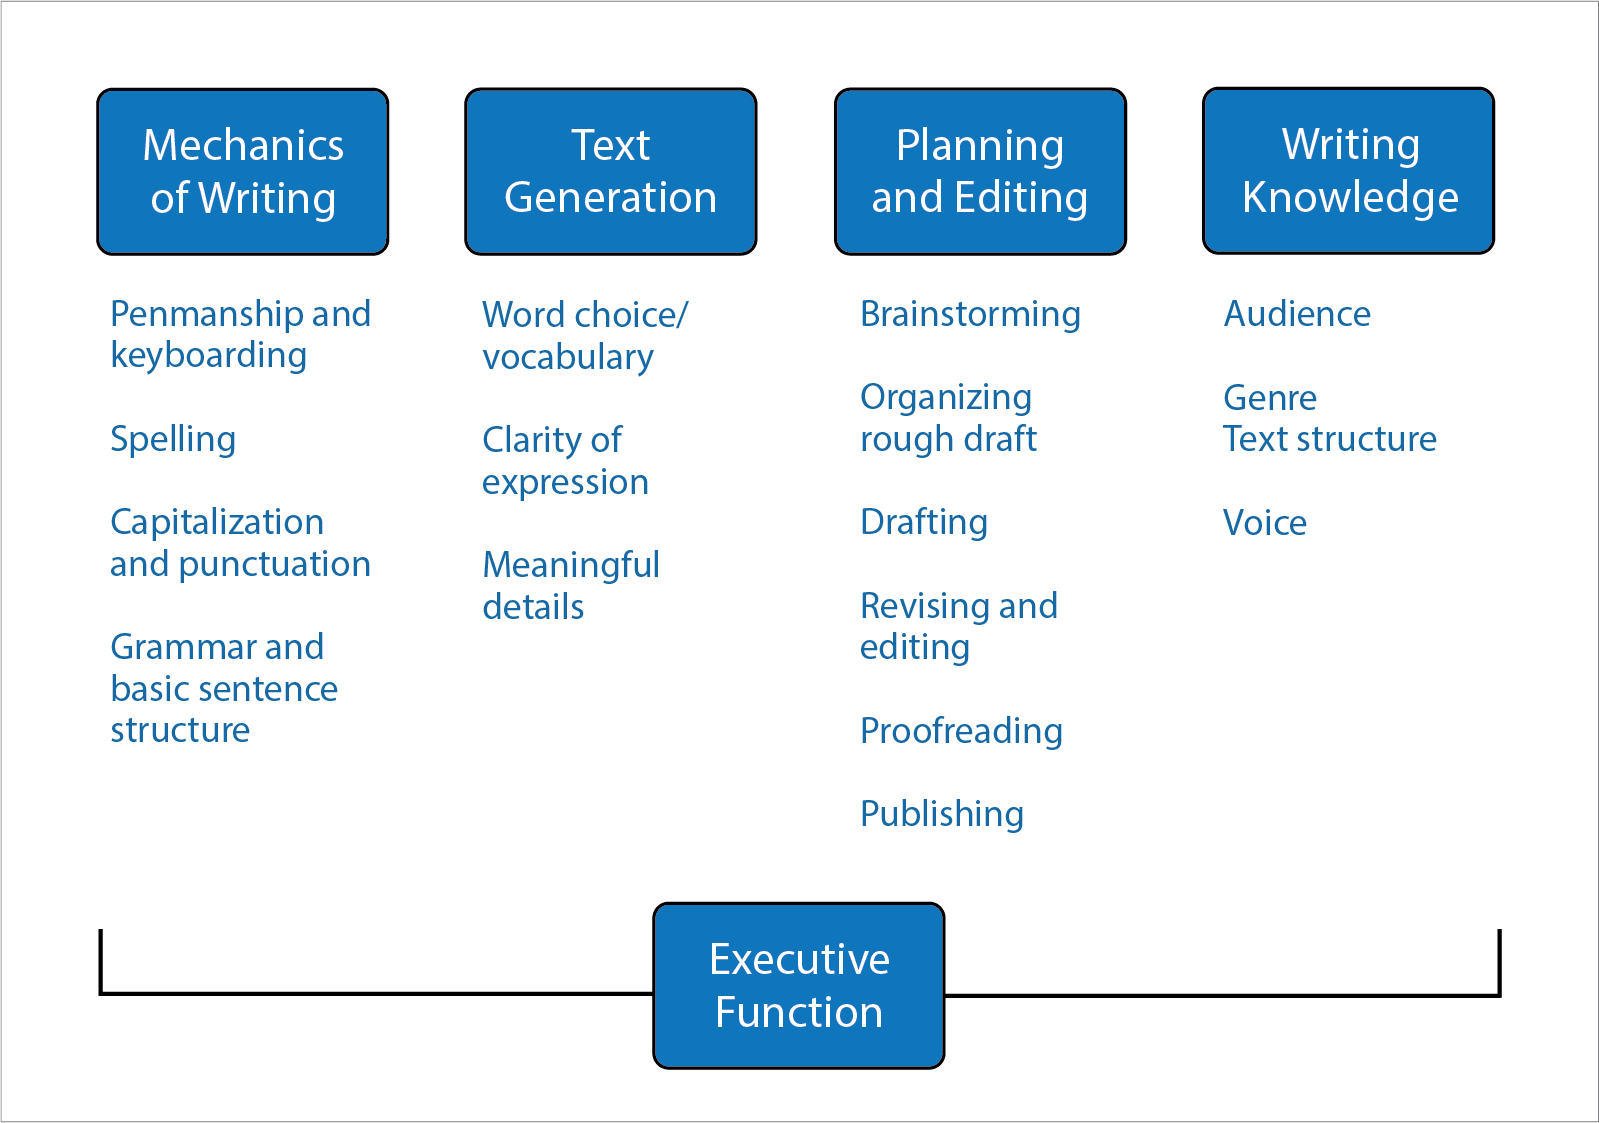 Diagram of the 5 elements of writing: mechanics of writing, text generation, planning and editing, writing knowledge, and executive function